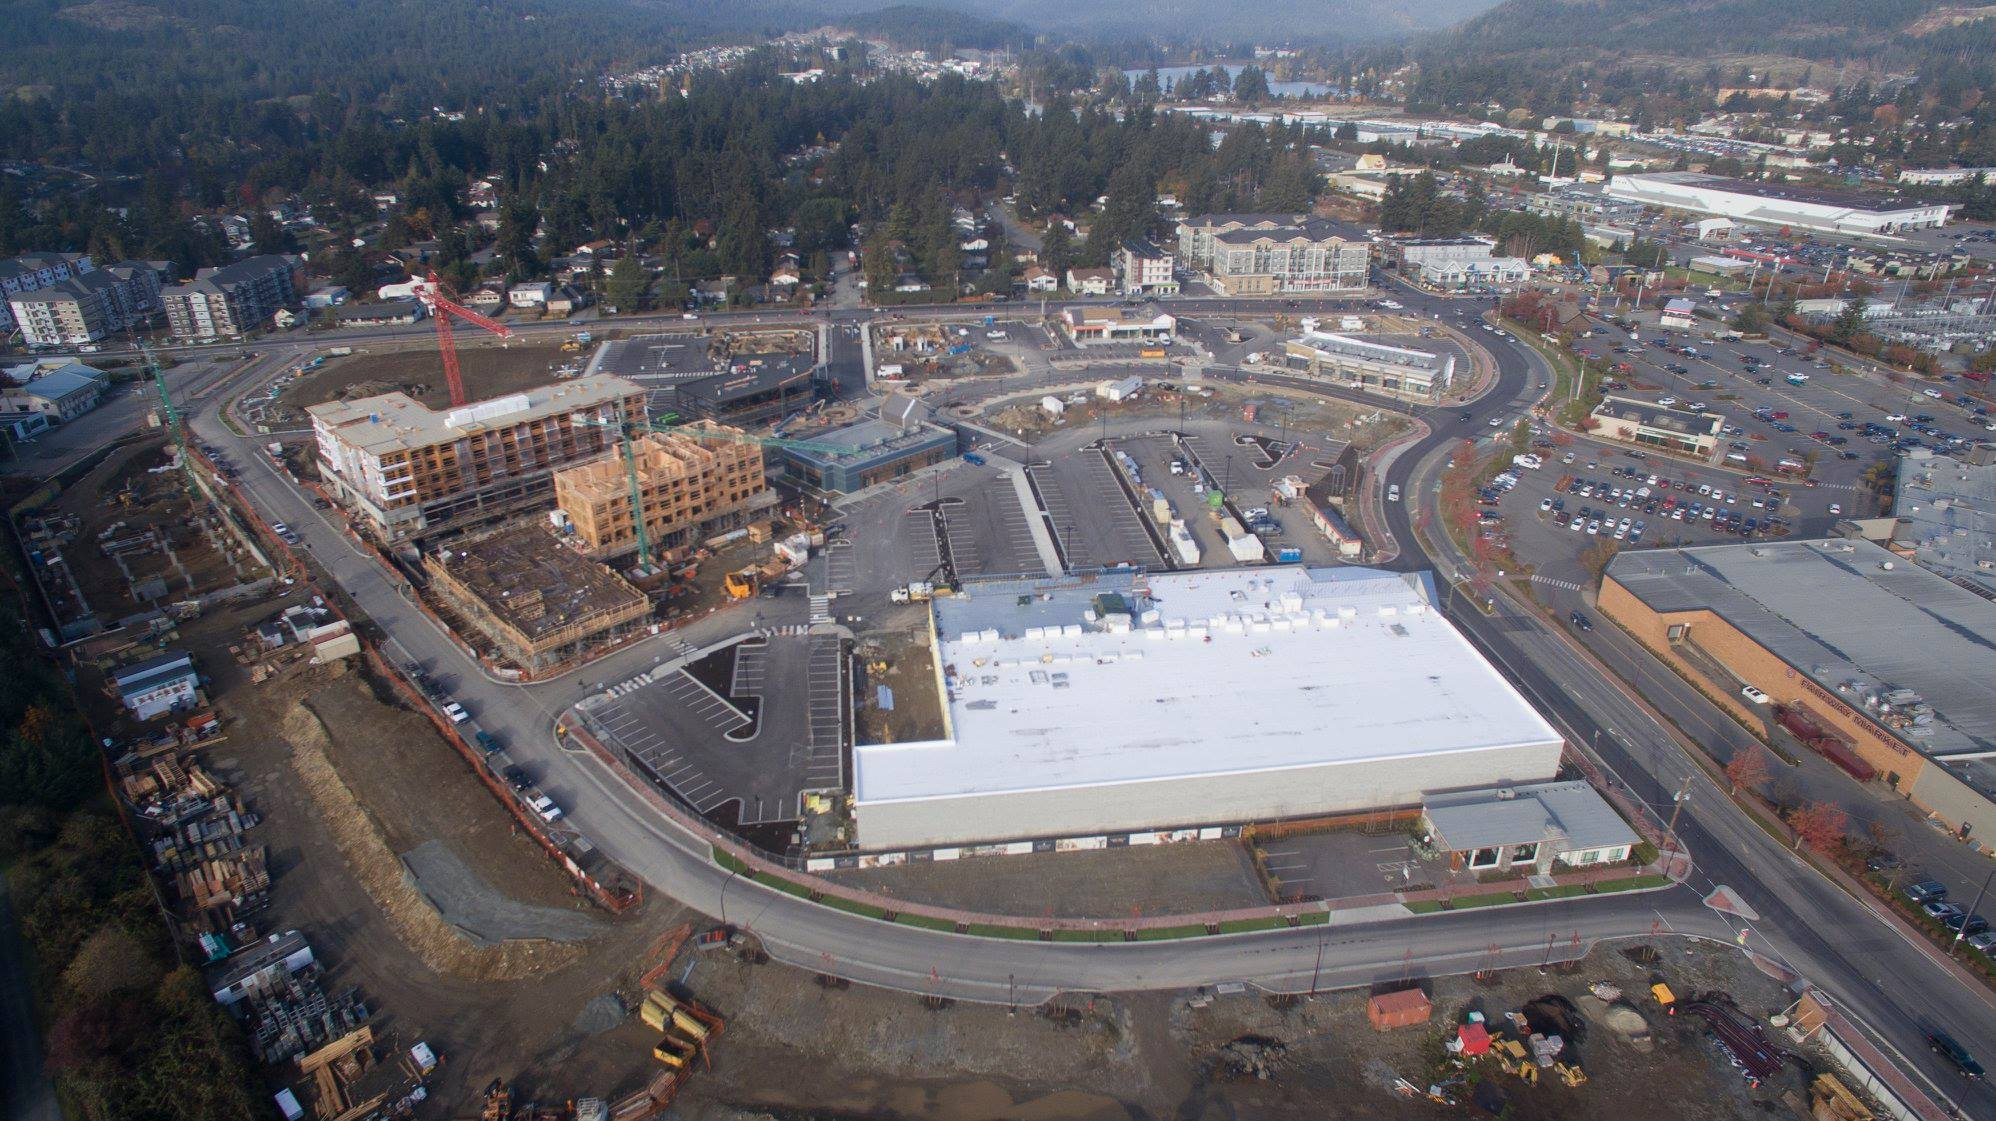 Aerial View (Thrifty Foods is the white roof). Photo: Belmont Residences Facebook